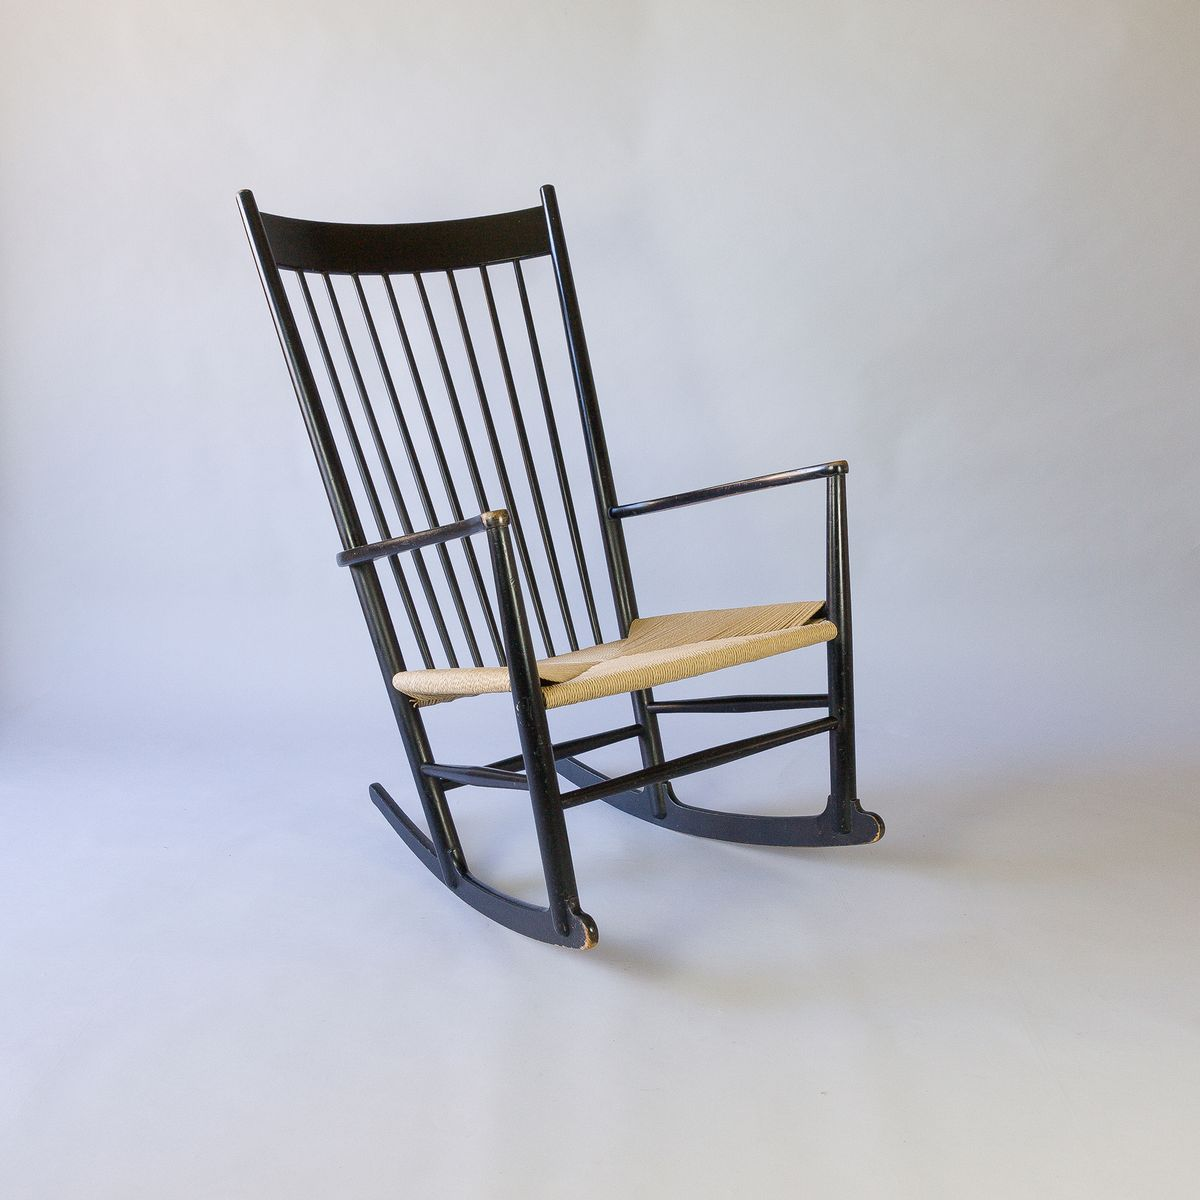 hans wegner rocking chair covers for folding chairs wedding mid century j16 by j fdb sale at price per piece